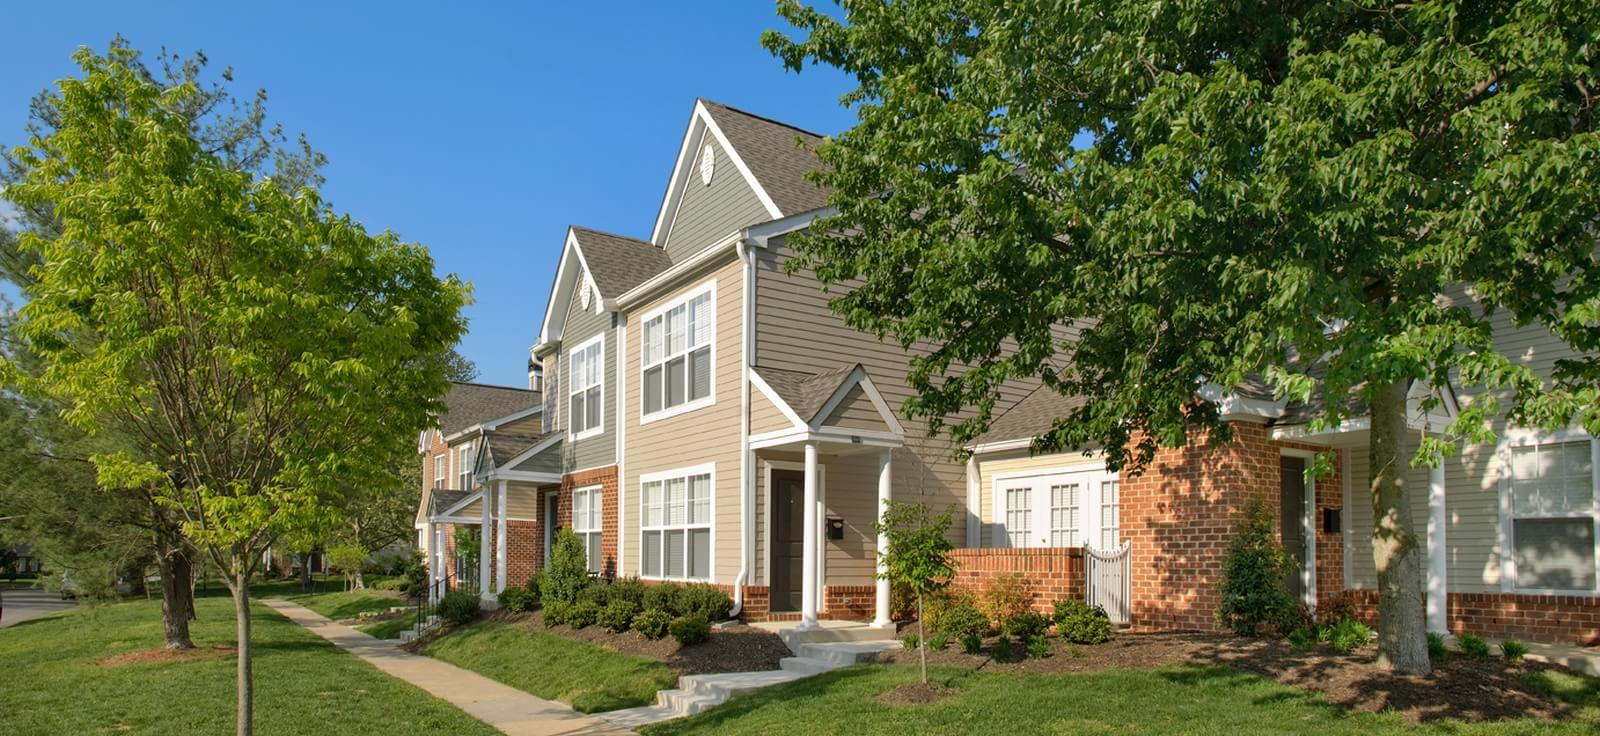 Gayton Pointe Townhomes For Rent In The West End Henrico County